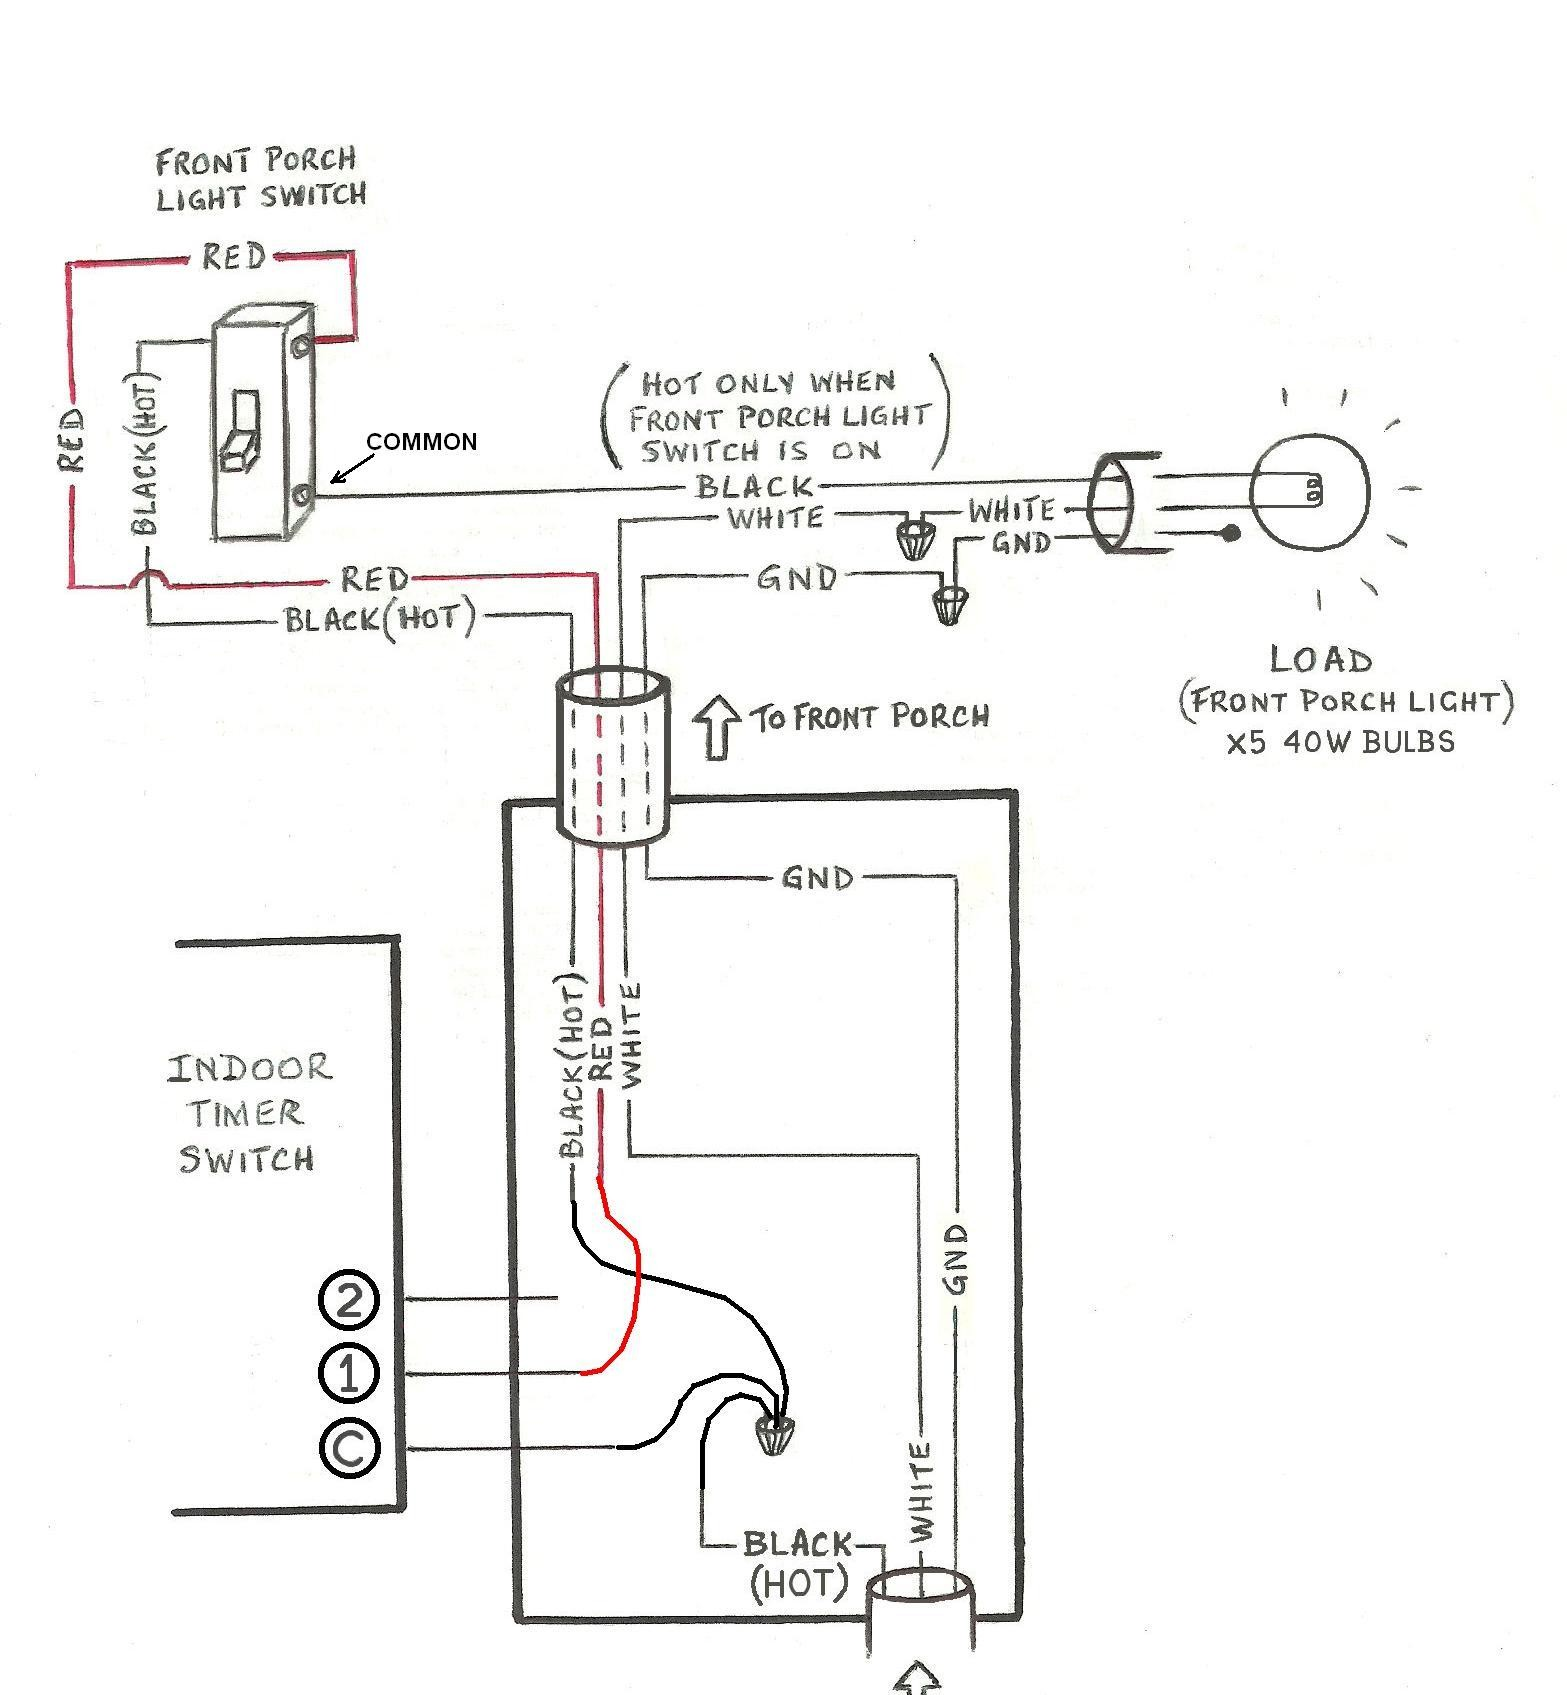 Tork Wiring Schematic for Lighting Contactor and Photocell Sn 2694] Cell Wiring Diagram Intermatic Time Clock Of Tork Wiring Schematic for Lighting Contactor and Photocell